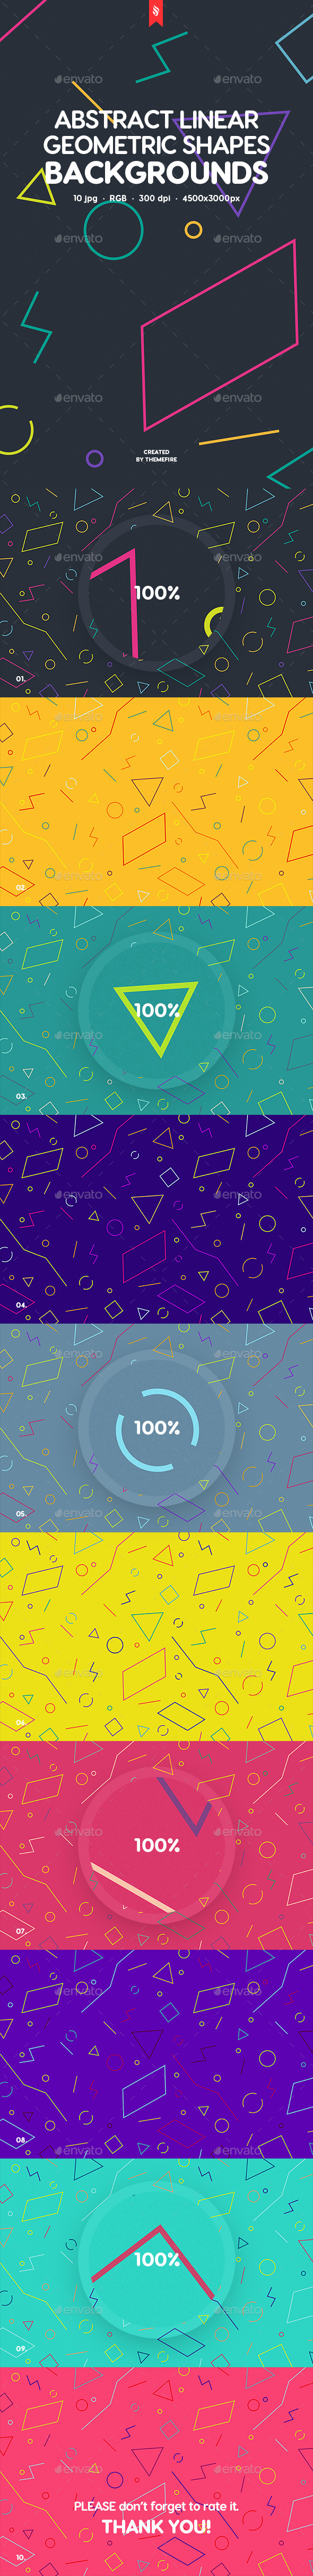 Abstract Linear Geometric Shapes Backgrounds - Patterns Backgrounds